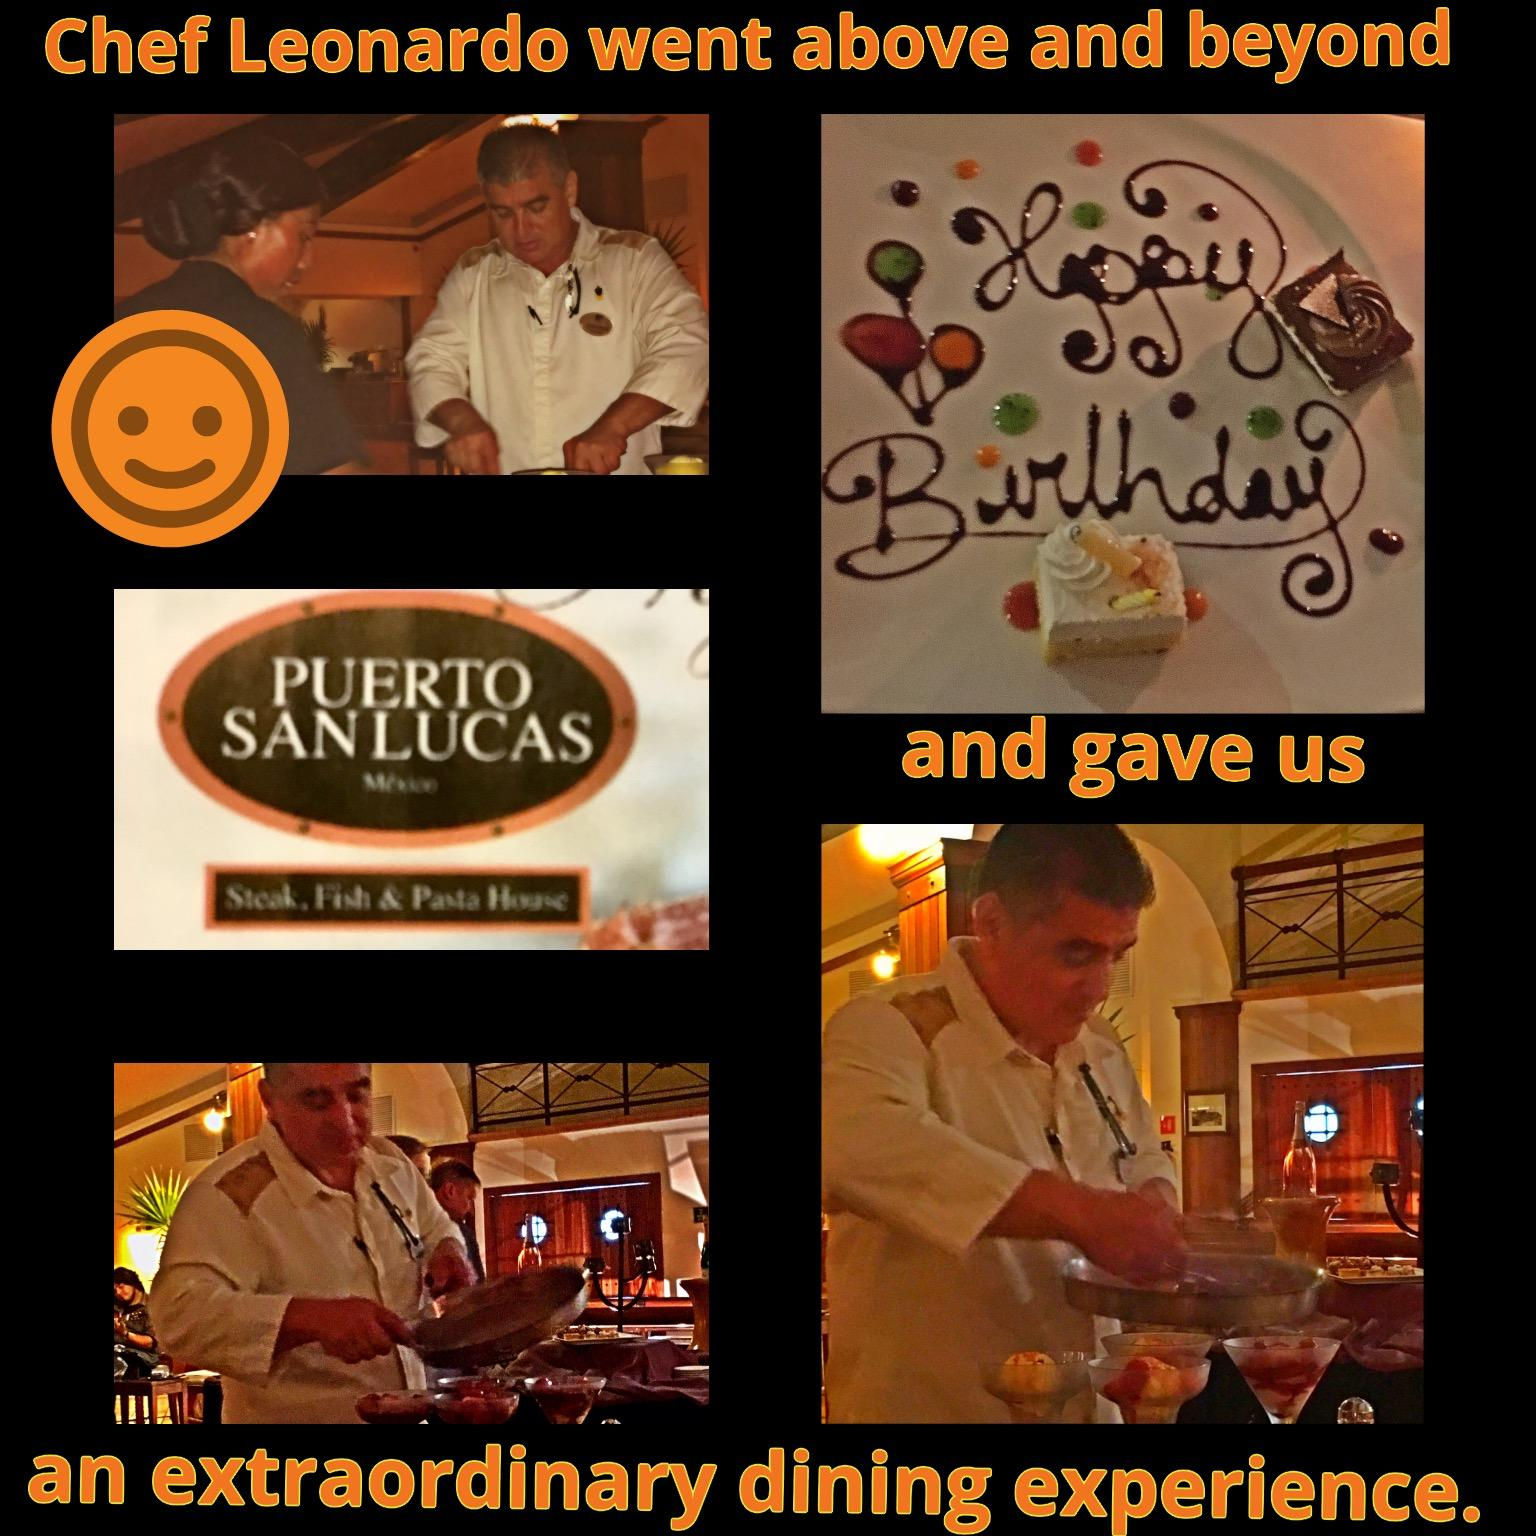 Puerto San Lucas with Chef Leonardo is the Best Restaurant and Chef of Playa Grande Resort & Grand Spa